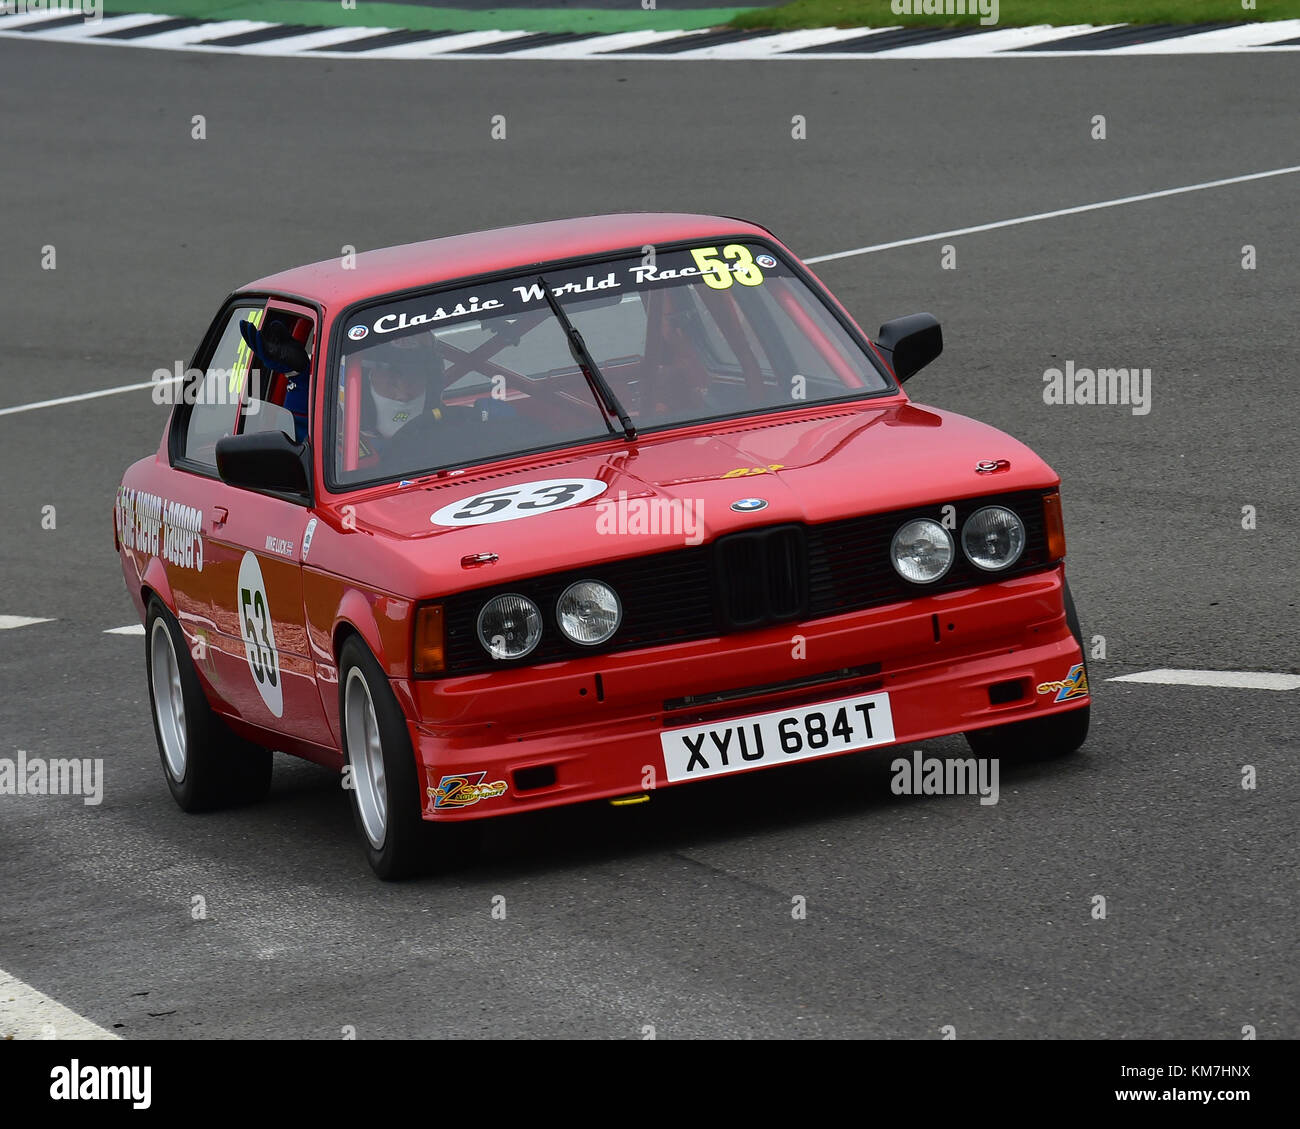 Bmw 320: Mike Luck, BMW 320, Super Touring Car Trophy, Silverstone